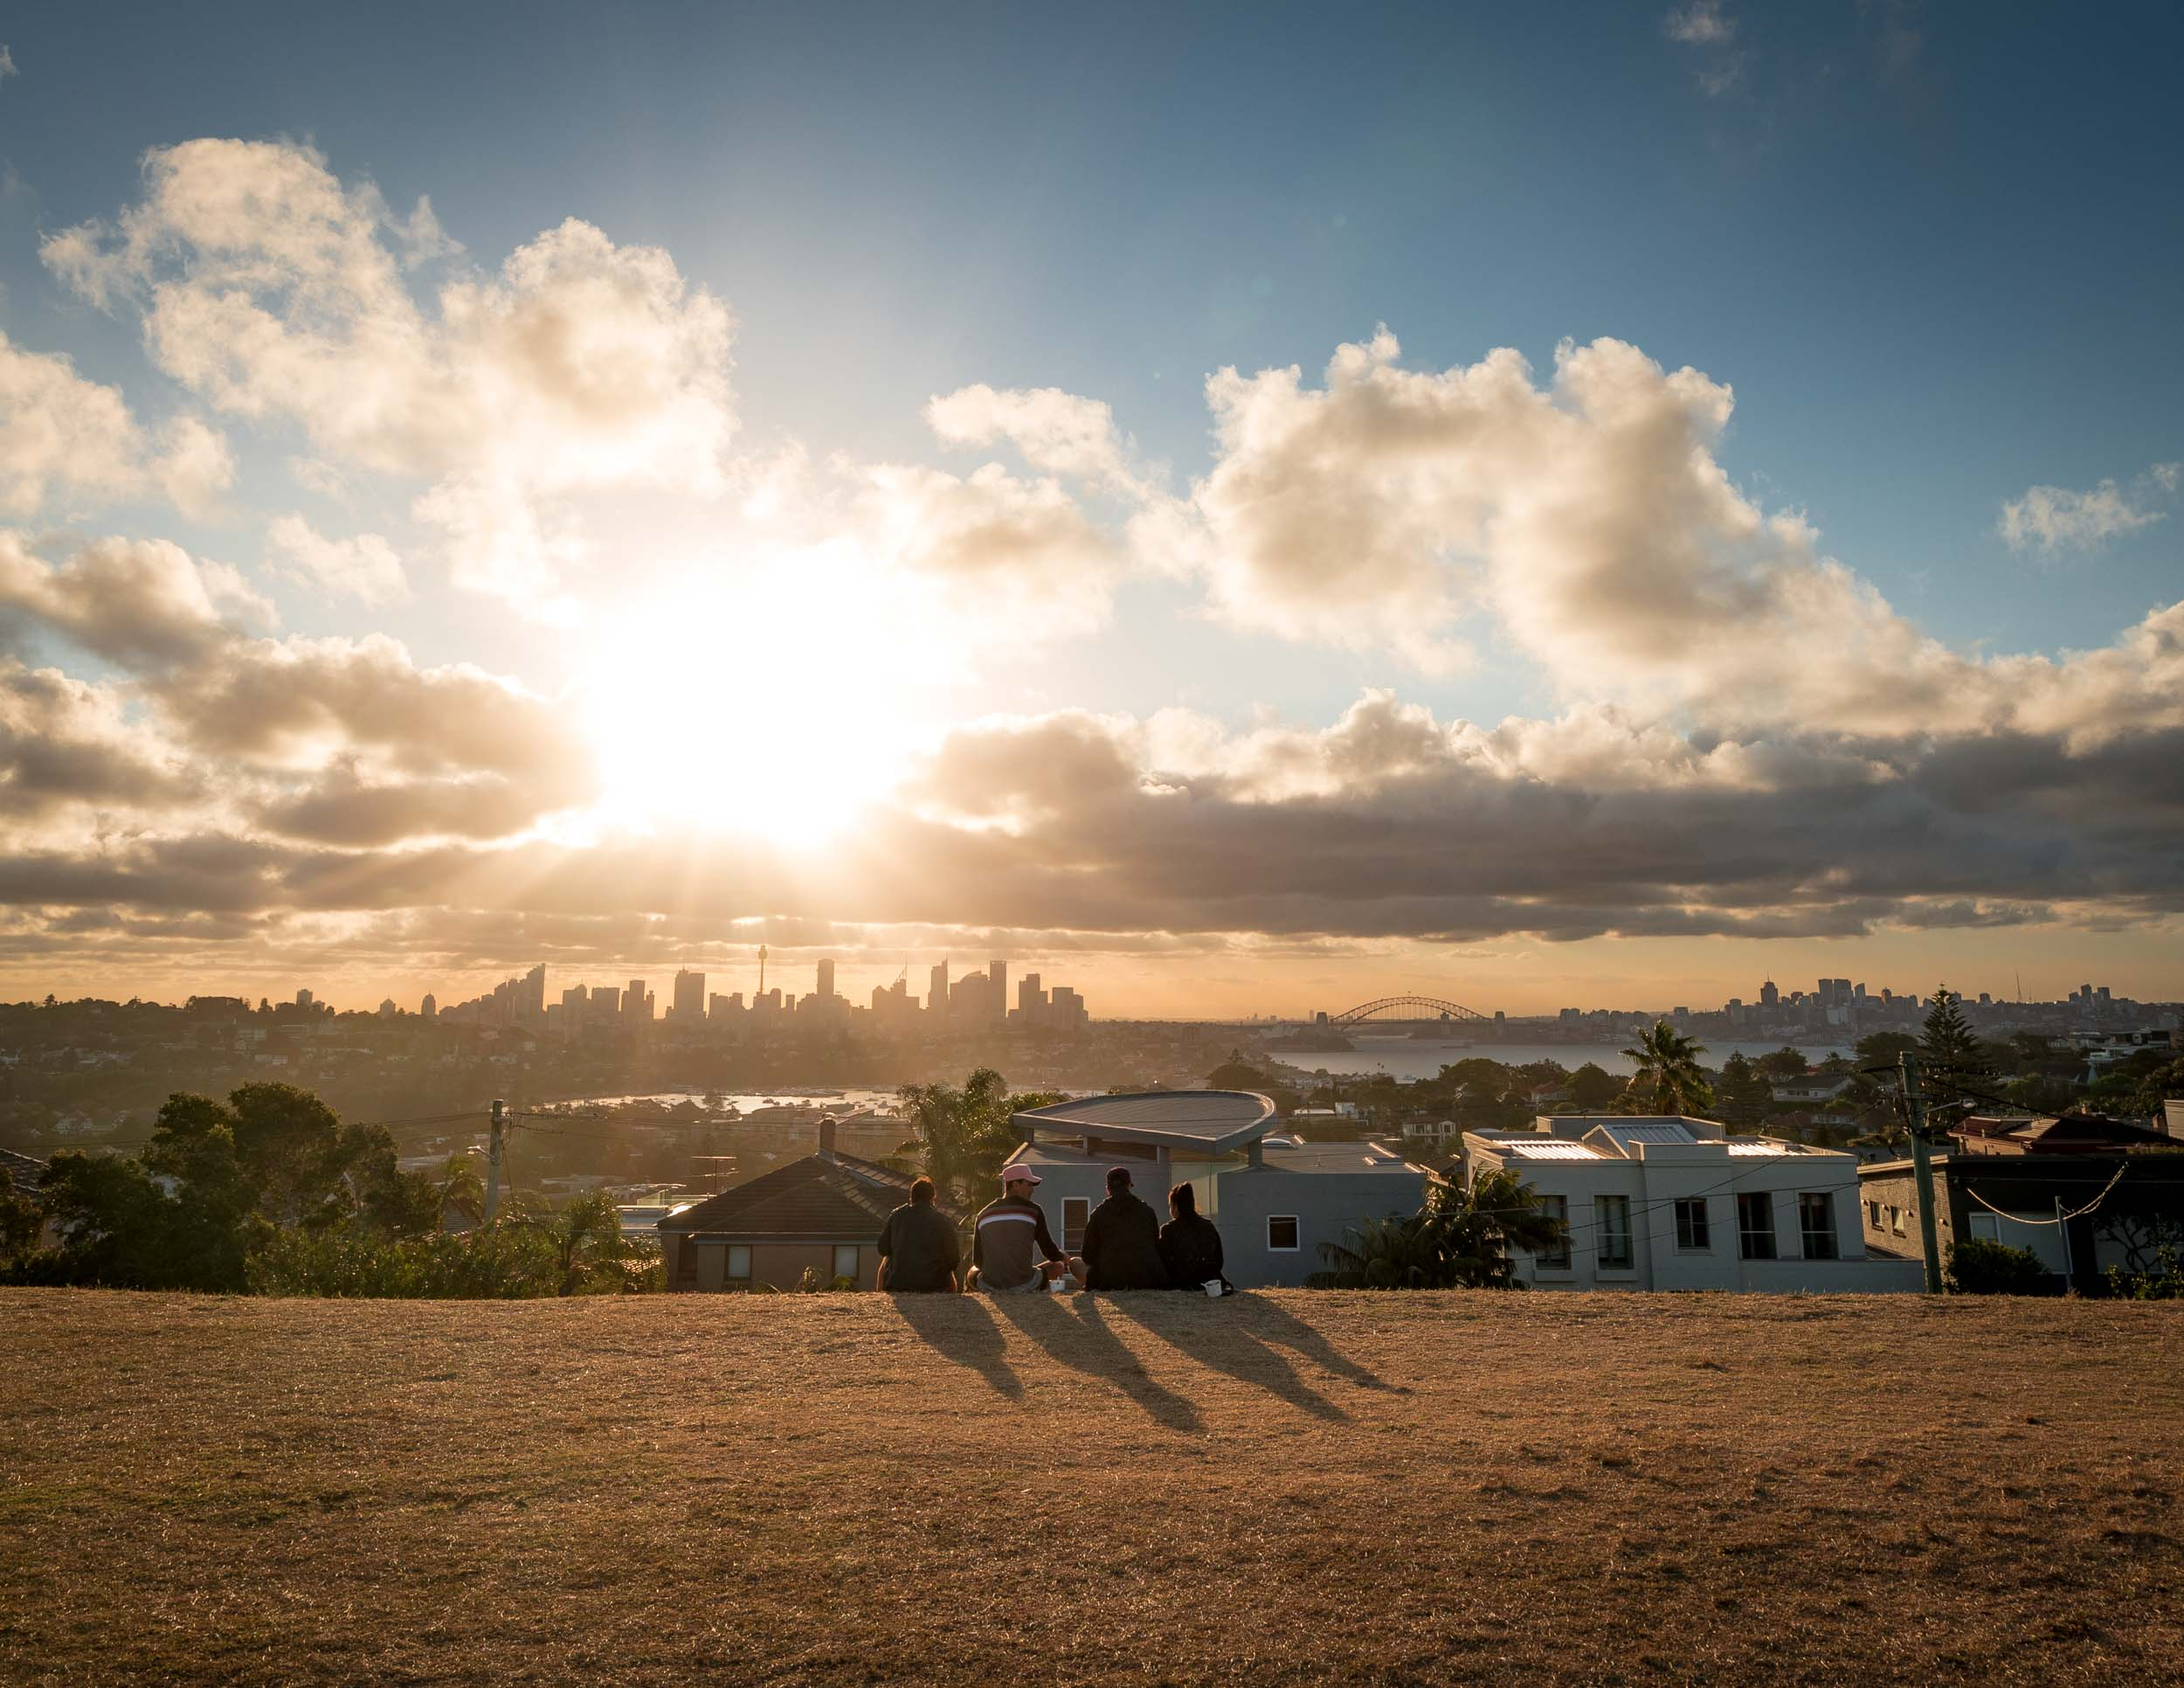 The best Sydney Sunset Spots: Dudley Page Reserve, Vaucluse